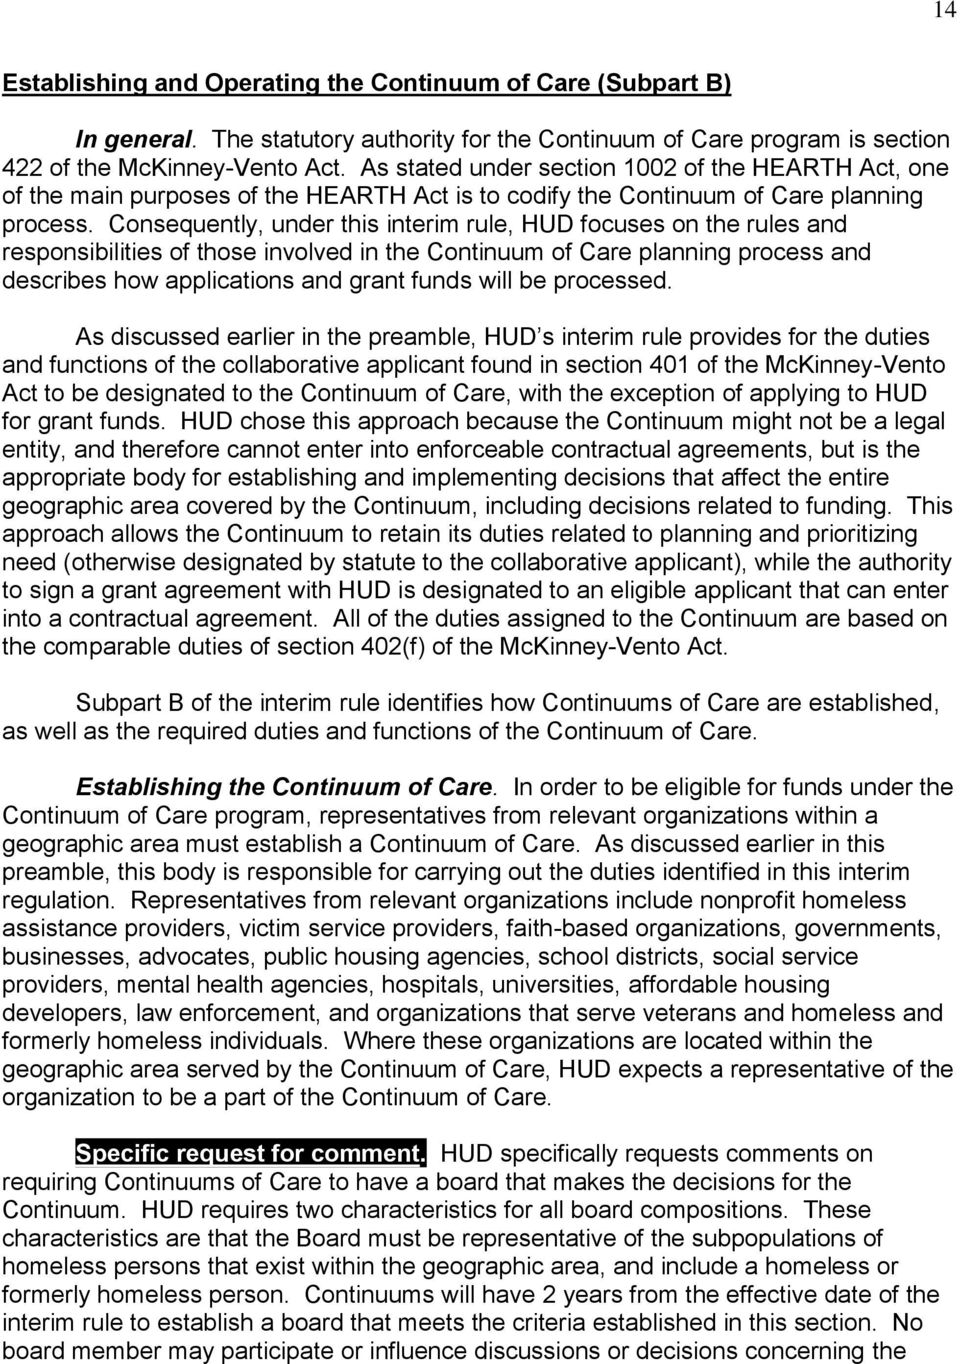 Consequently, under this interim rule, HUD focuses on the rules and responsibilities of those involved in the Continuum of Care planning process and describes how applications and grant funds will be